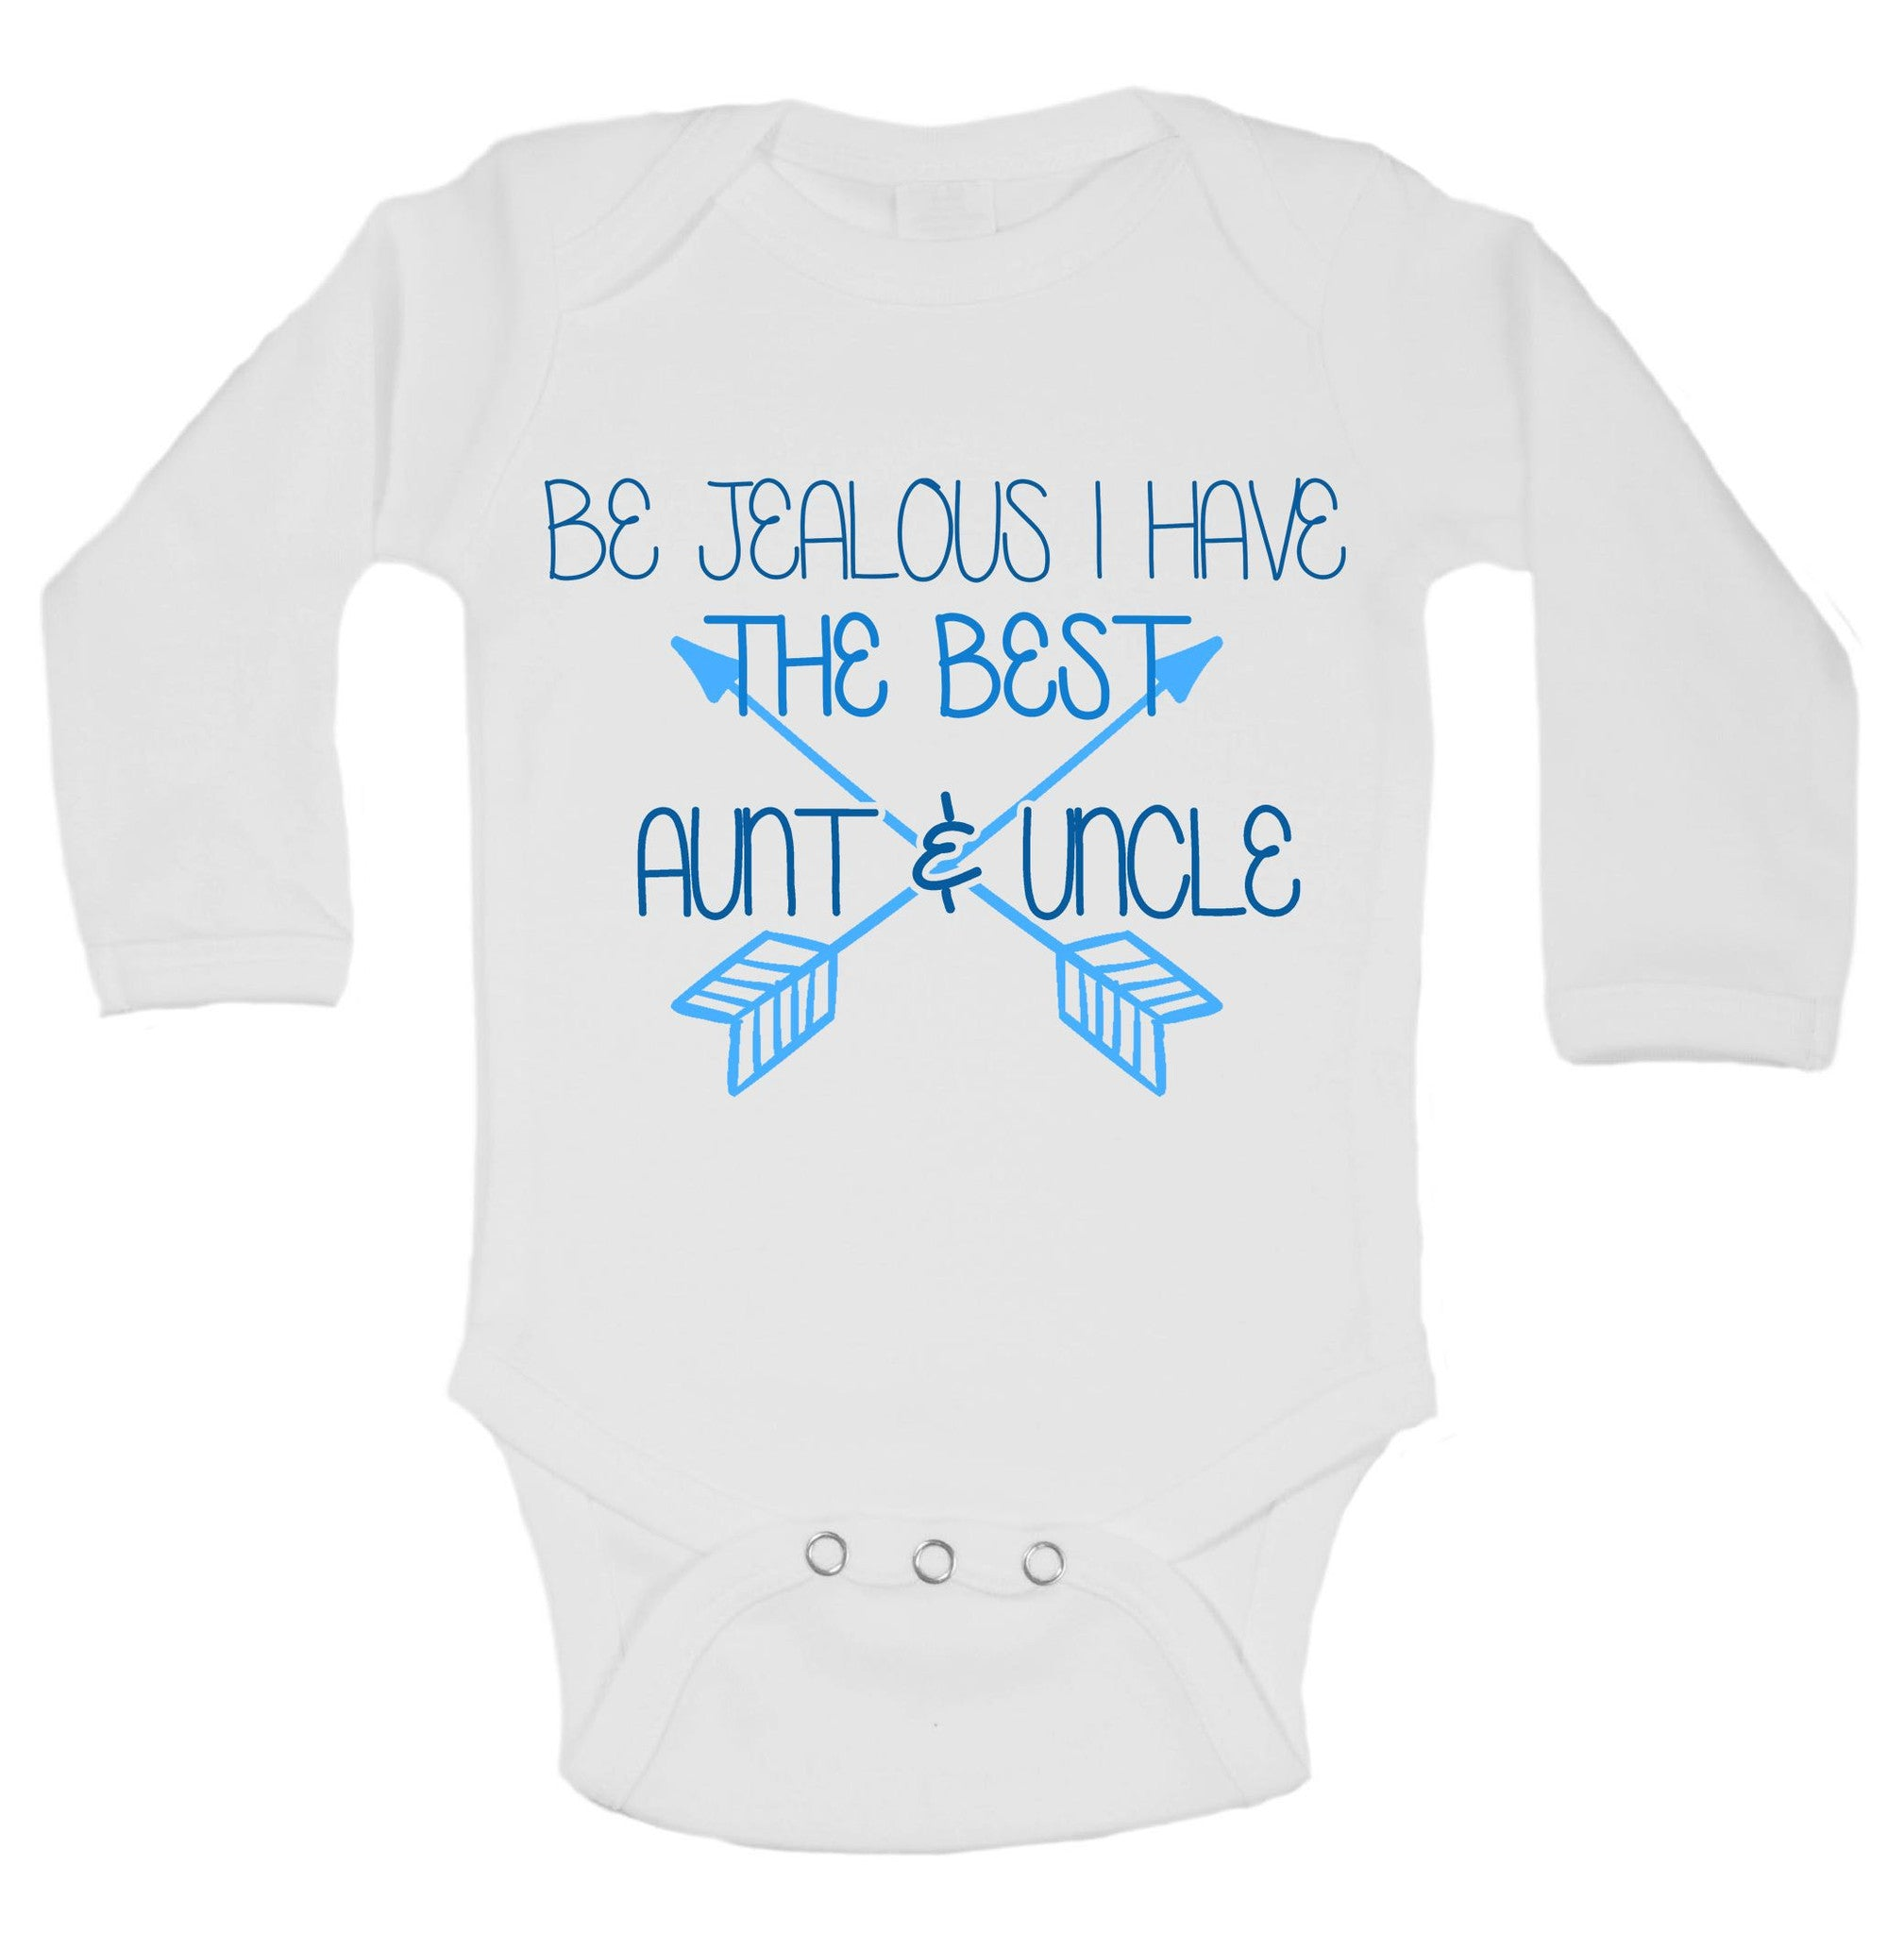 Be Jealous I Have The Best Aunt & Uncle Funny Kids Onesie - B129 - Funny Shirts Tank Tops Burnouts and Triblends  - 1